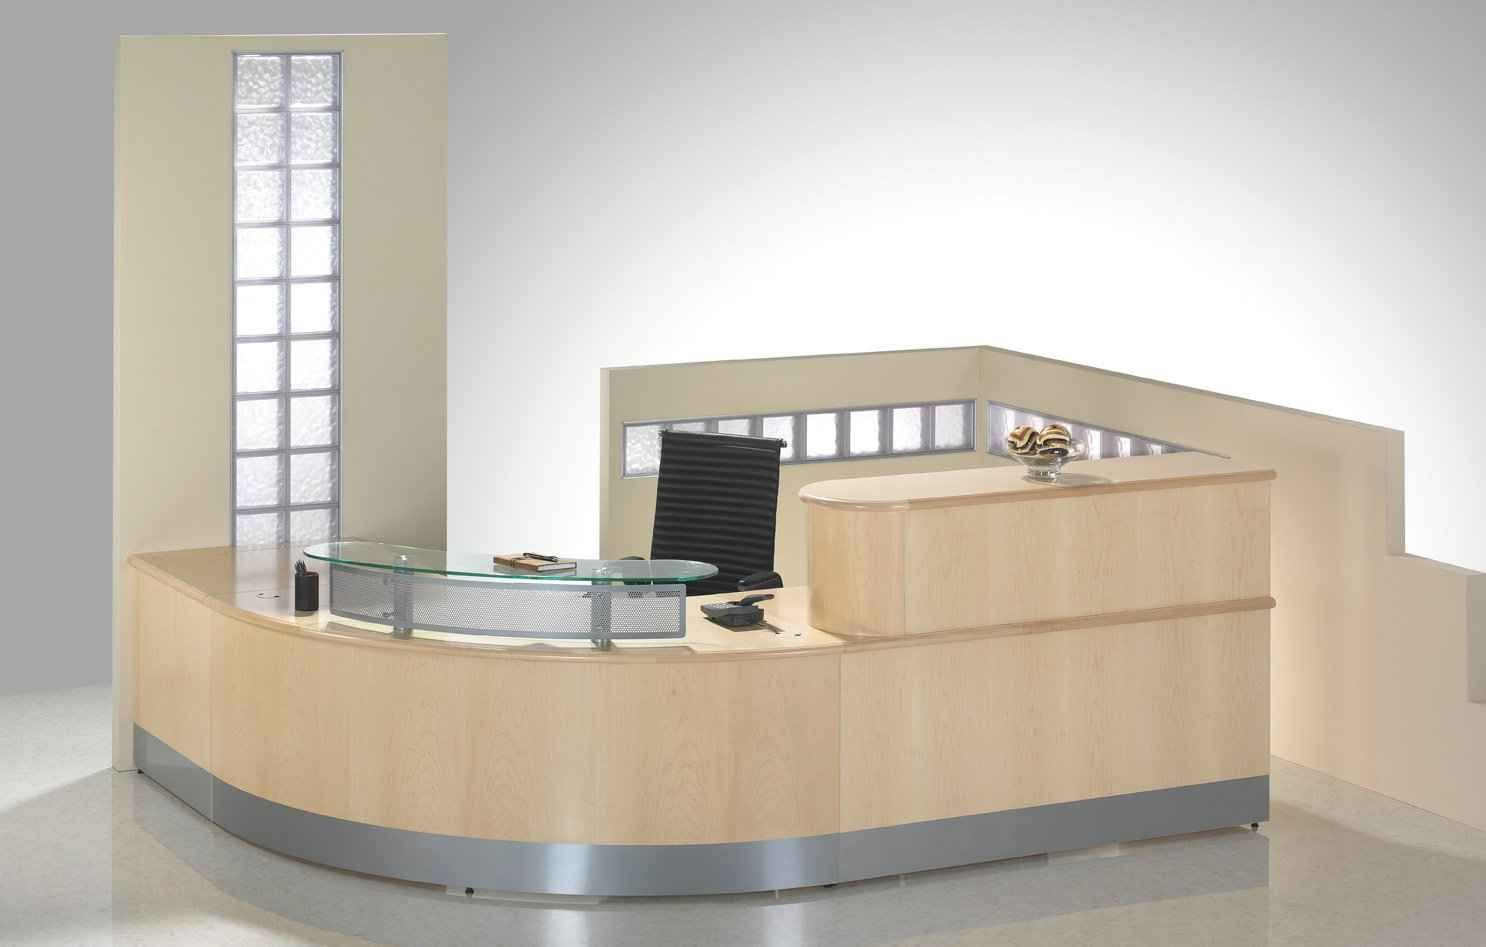 Office Furniture Office Reception Area Furniture Ideas Intended Office Reception Desk Designs Ashley Furniture Home Check More At Http Pin By Luciver Sanom On Desk Exclusive Ideas Pinterest